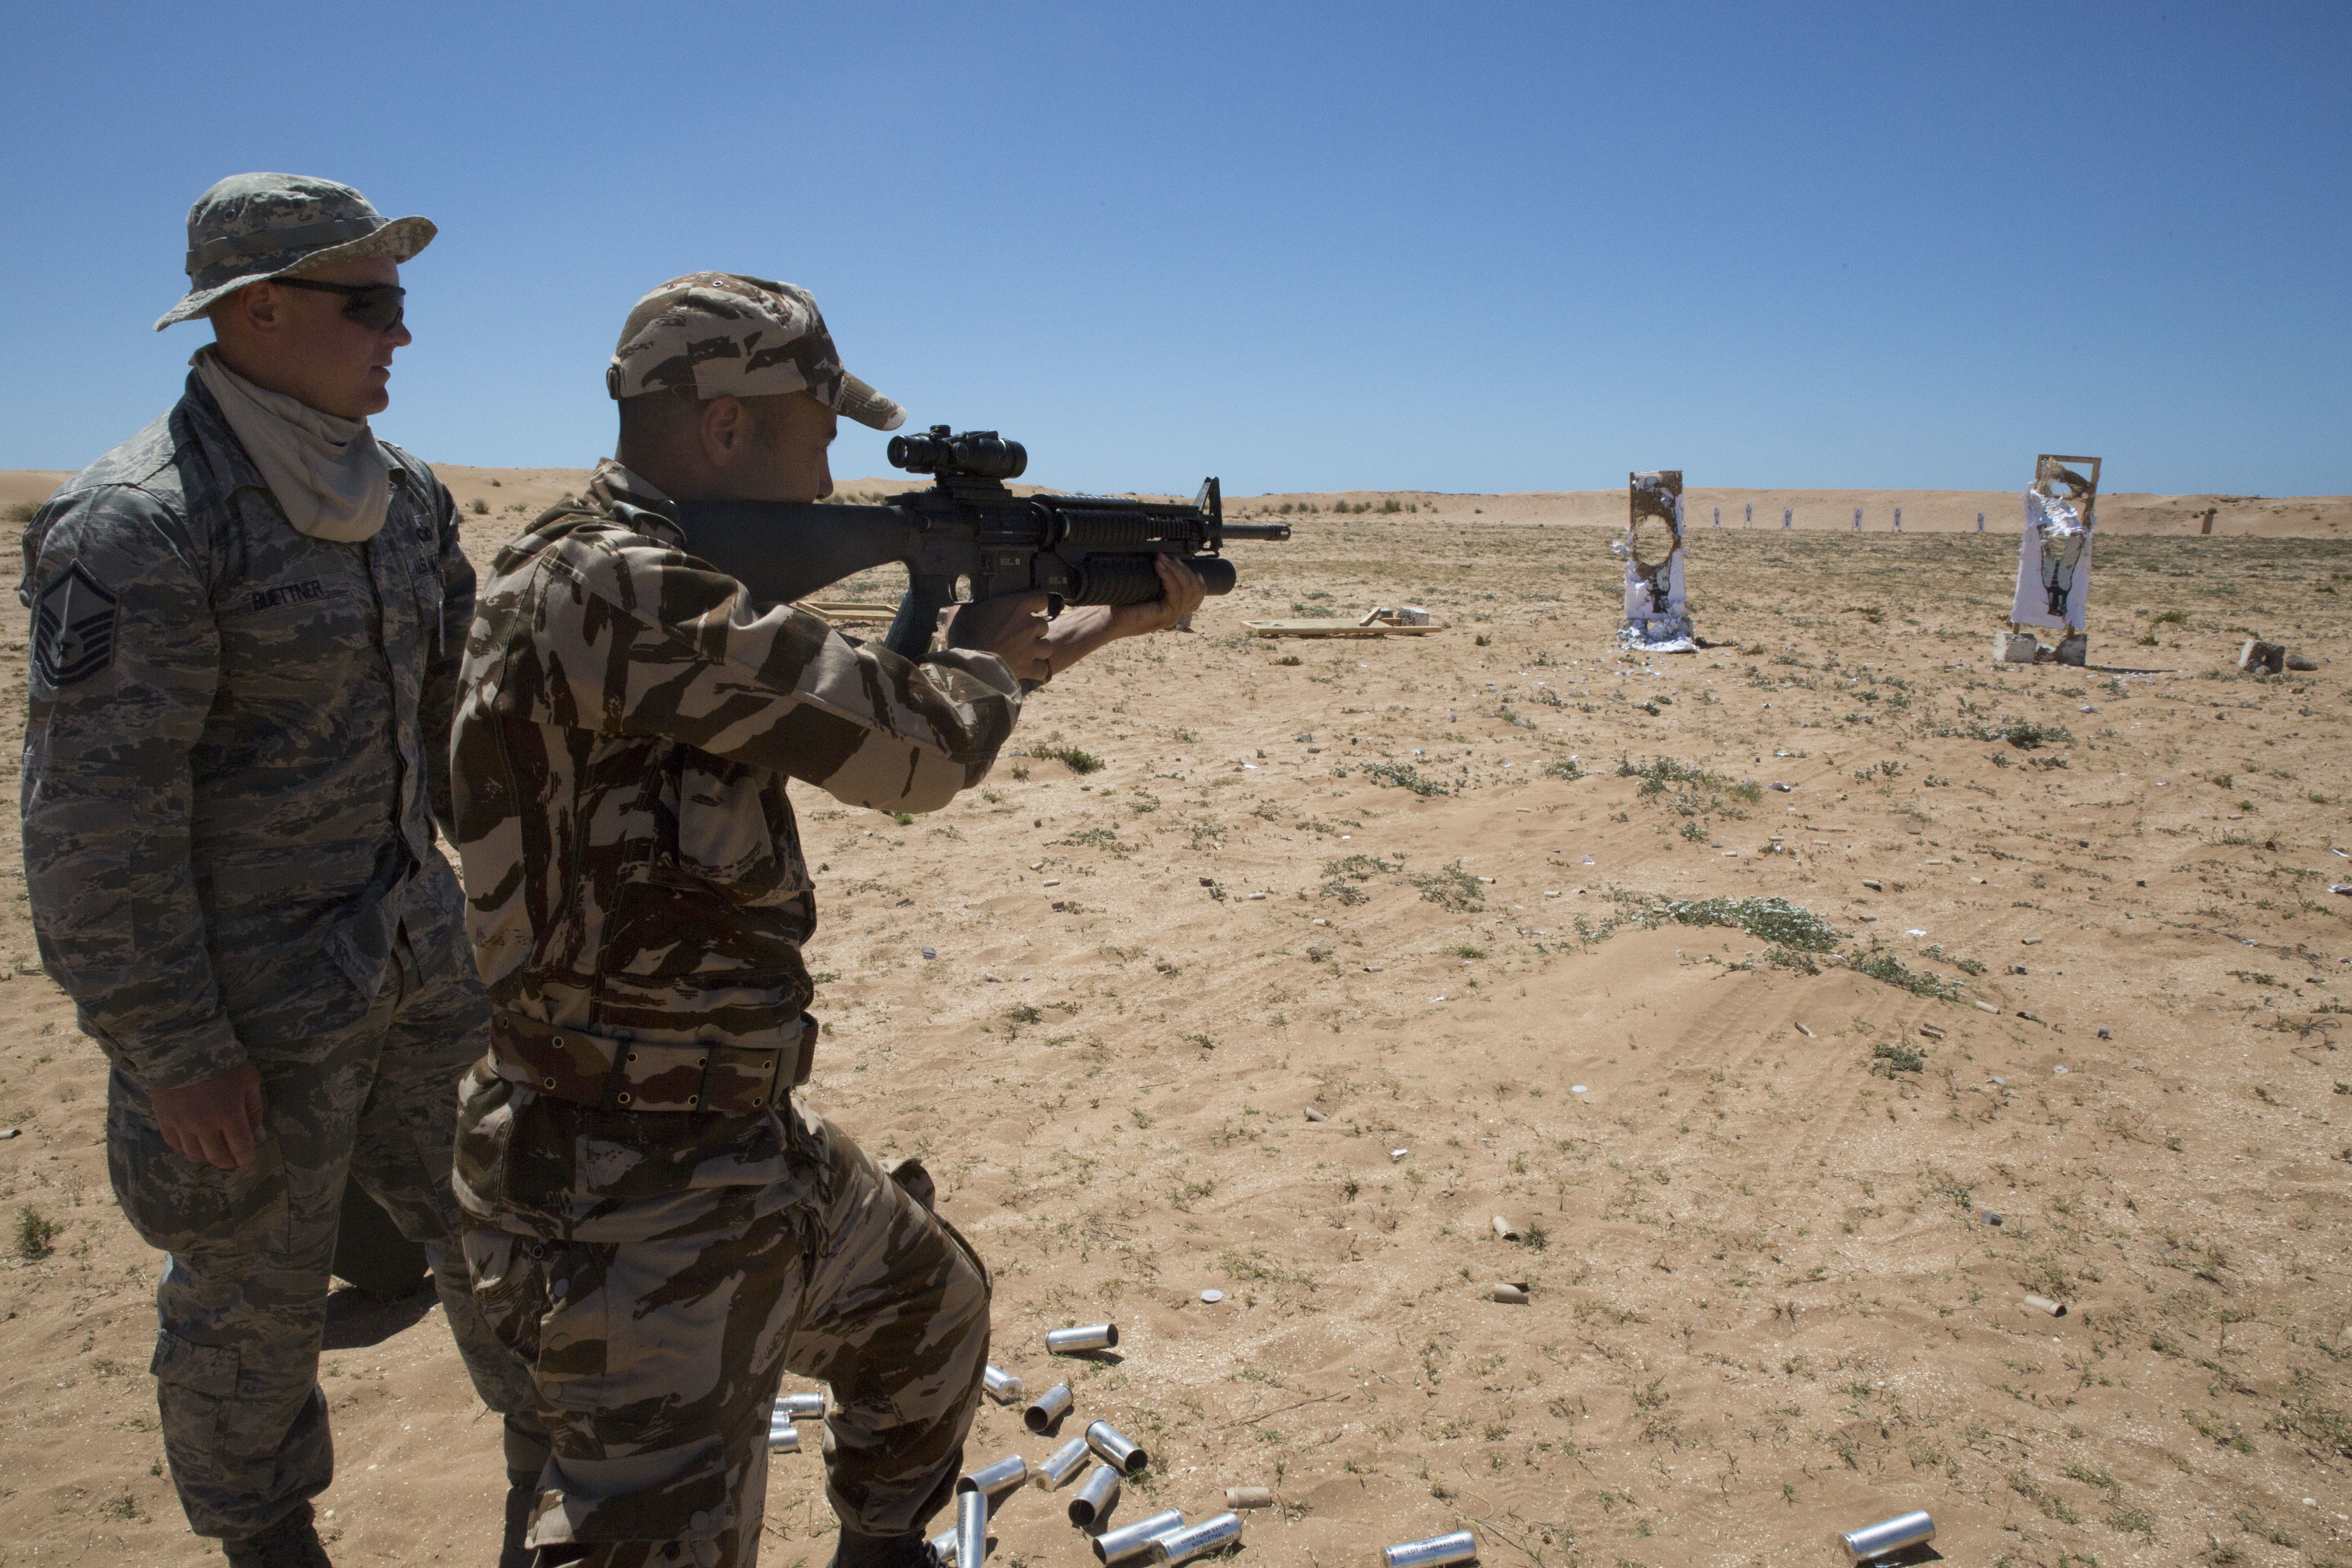 Service members from the Royal Moroccan Armed Forces practice firing the M203 grenade launcher during Exercise African Lion 16, April 19, 2016 aboard the Tifnit Military Base in Morocco. African Lion is an annually-scheduled, combined U.S.-Moroccan exercise designed to improve interoperability and mutual understanding of each nation's tactics, techniques and procedures while demonstrating the strong bond between the two nations' militaries.  The exercise is scheduled to run through late April 2016.  (U.S. Marine Corps photo by Lance Cpl. Melissa Martens/Released)